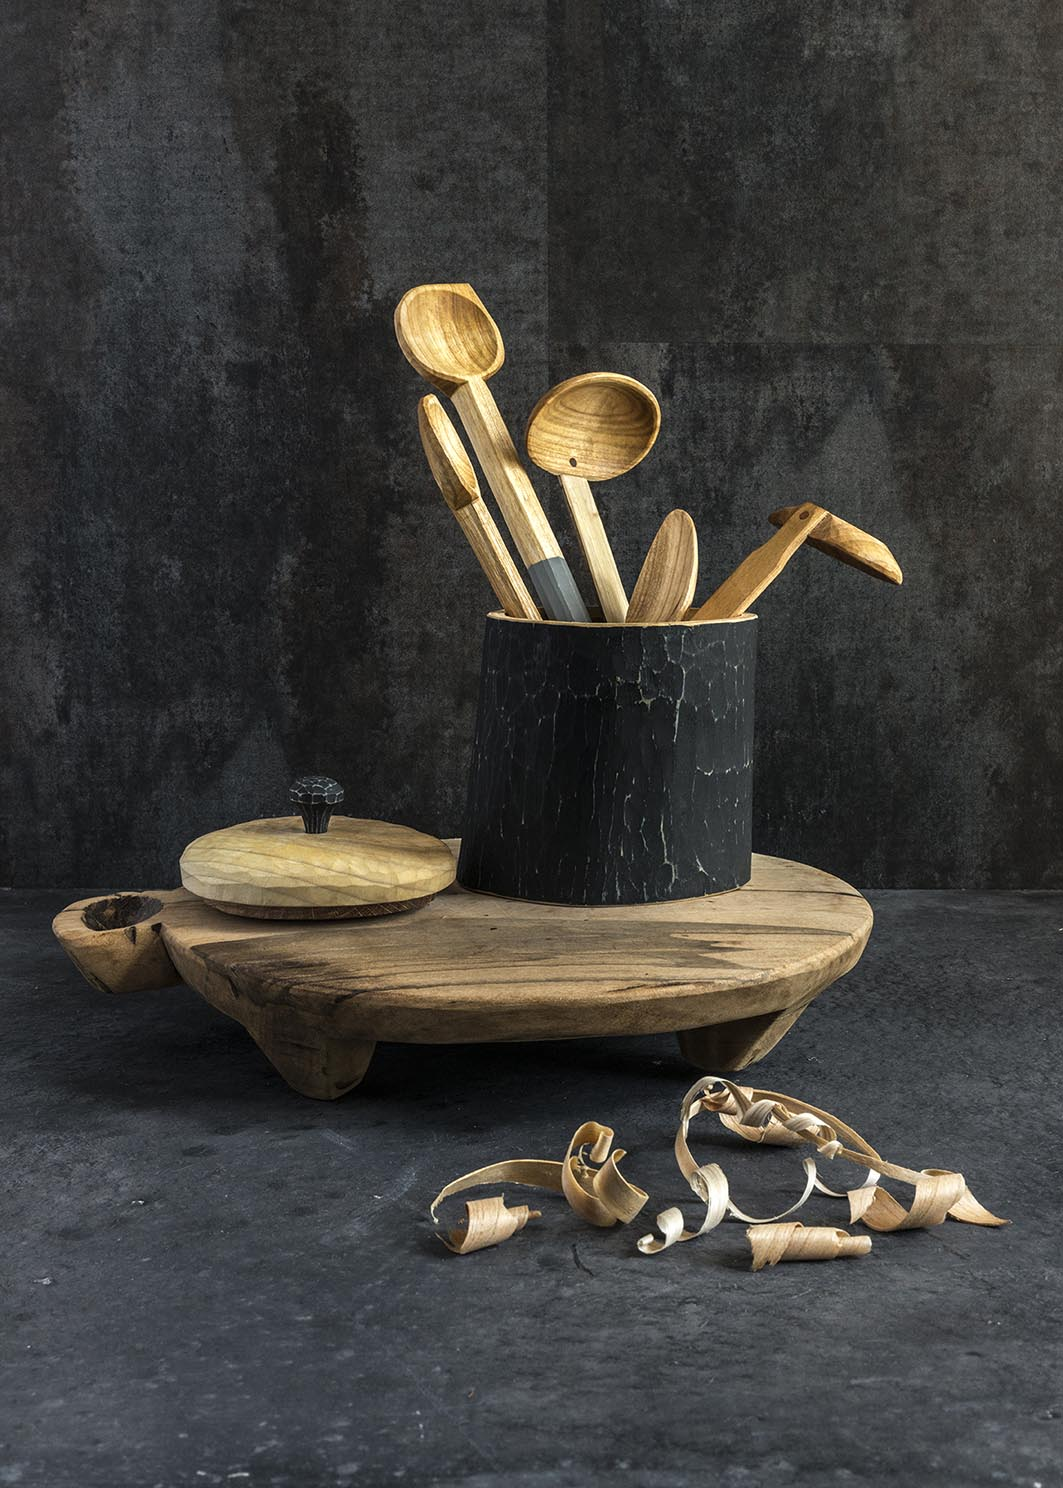 Hand carved spoons in a wooden pot with lid by Will Priestley.